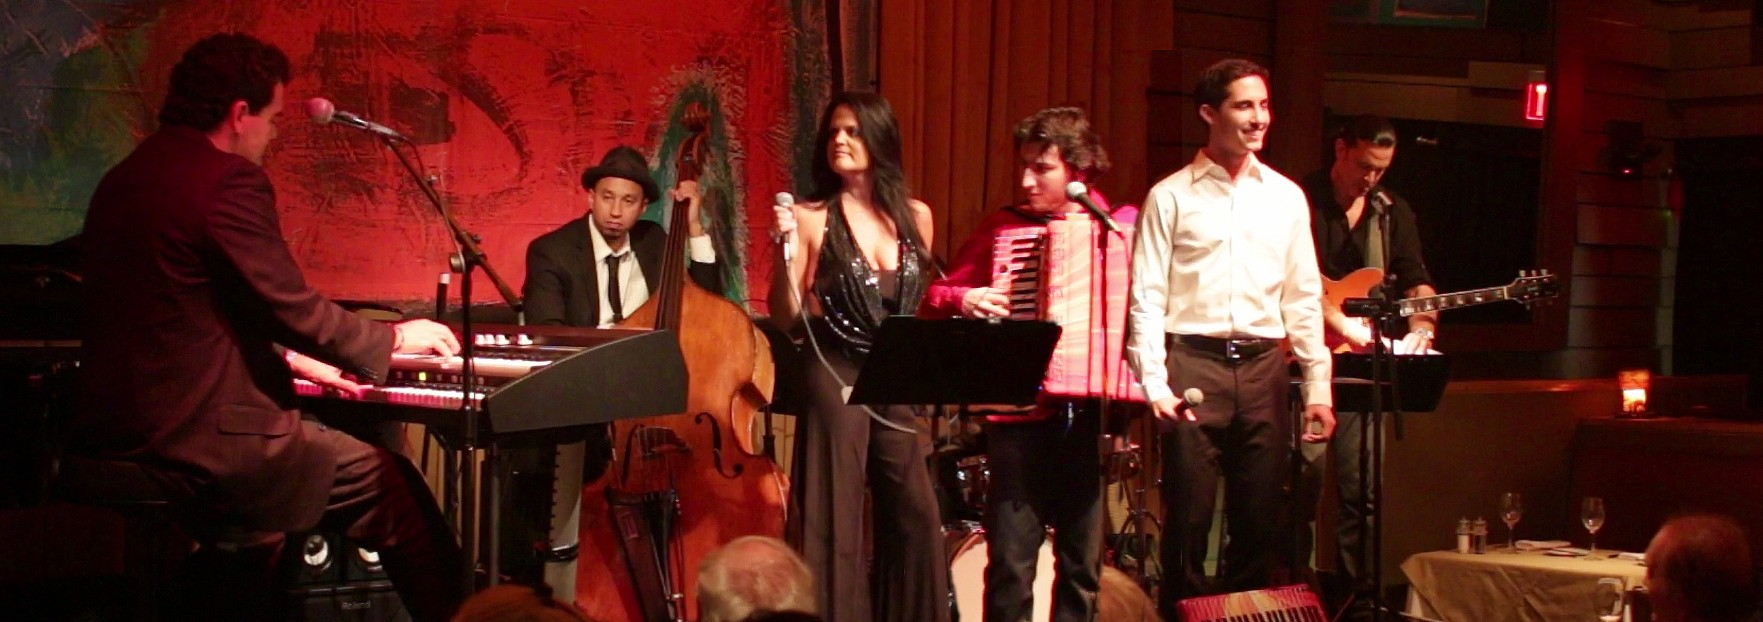 Night of Jazz at Vibrato - Stage and Band Shot